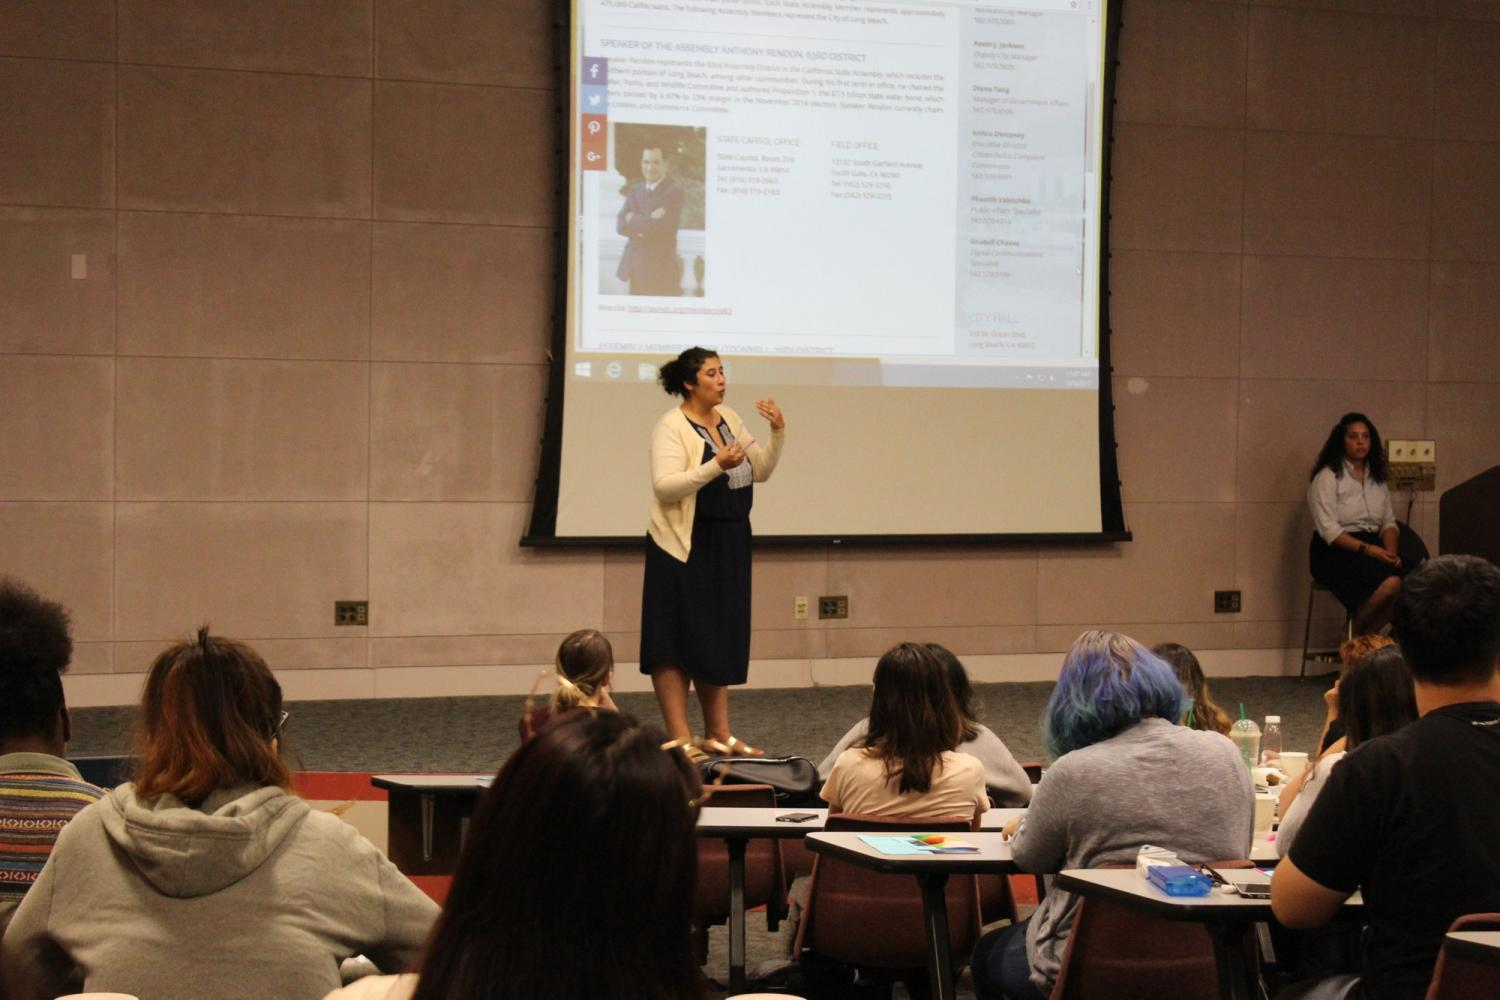 Guest speaker, Helena Youssef, at the Women, Work and Civic Duty presentation organized by the Women and Gender Studies Department Chair Ana Torres-Bower and Mariam Youssef, adjunct professor. Helena Youssef explains the importance of knowledge, respect and understanding to be successful in achieving political goals. Photo credit: Carmelita Islas Mendez